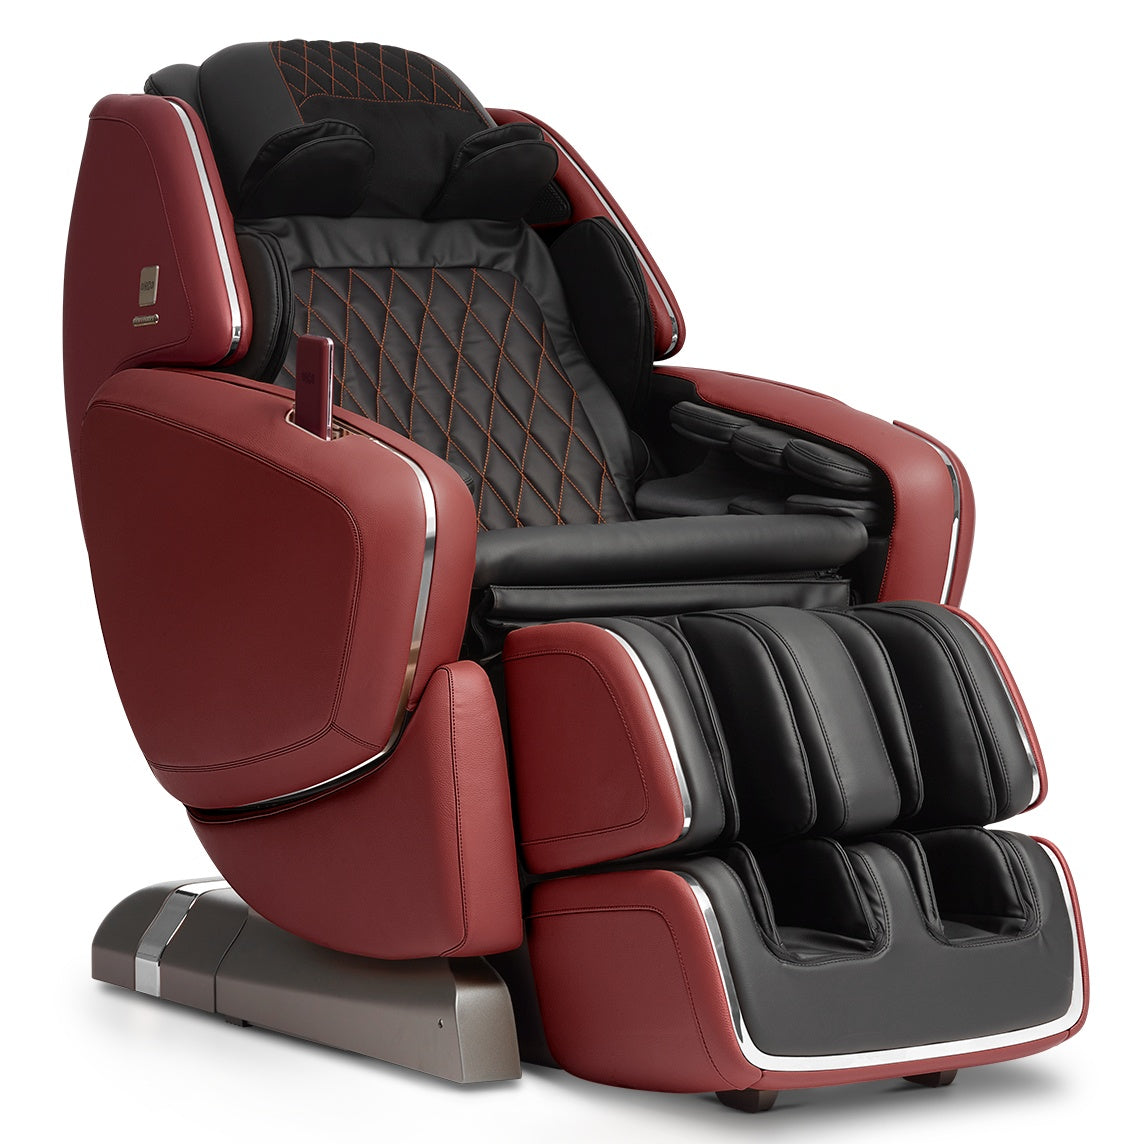 Massage Chair - OHCO M.8 Massage Chair